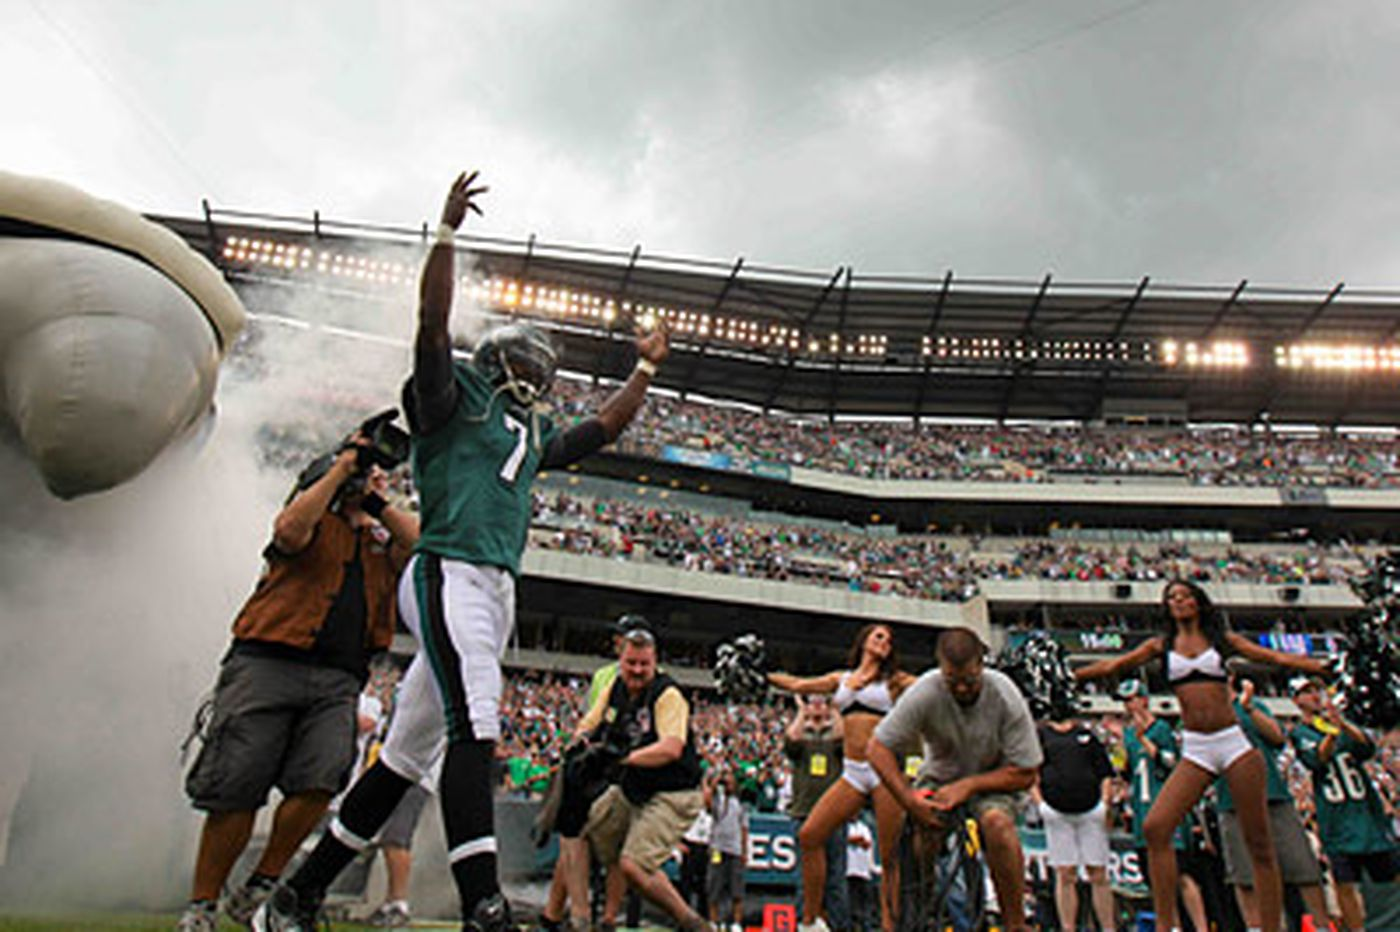 With Vick, Maclin back, Eagles are in a good spot